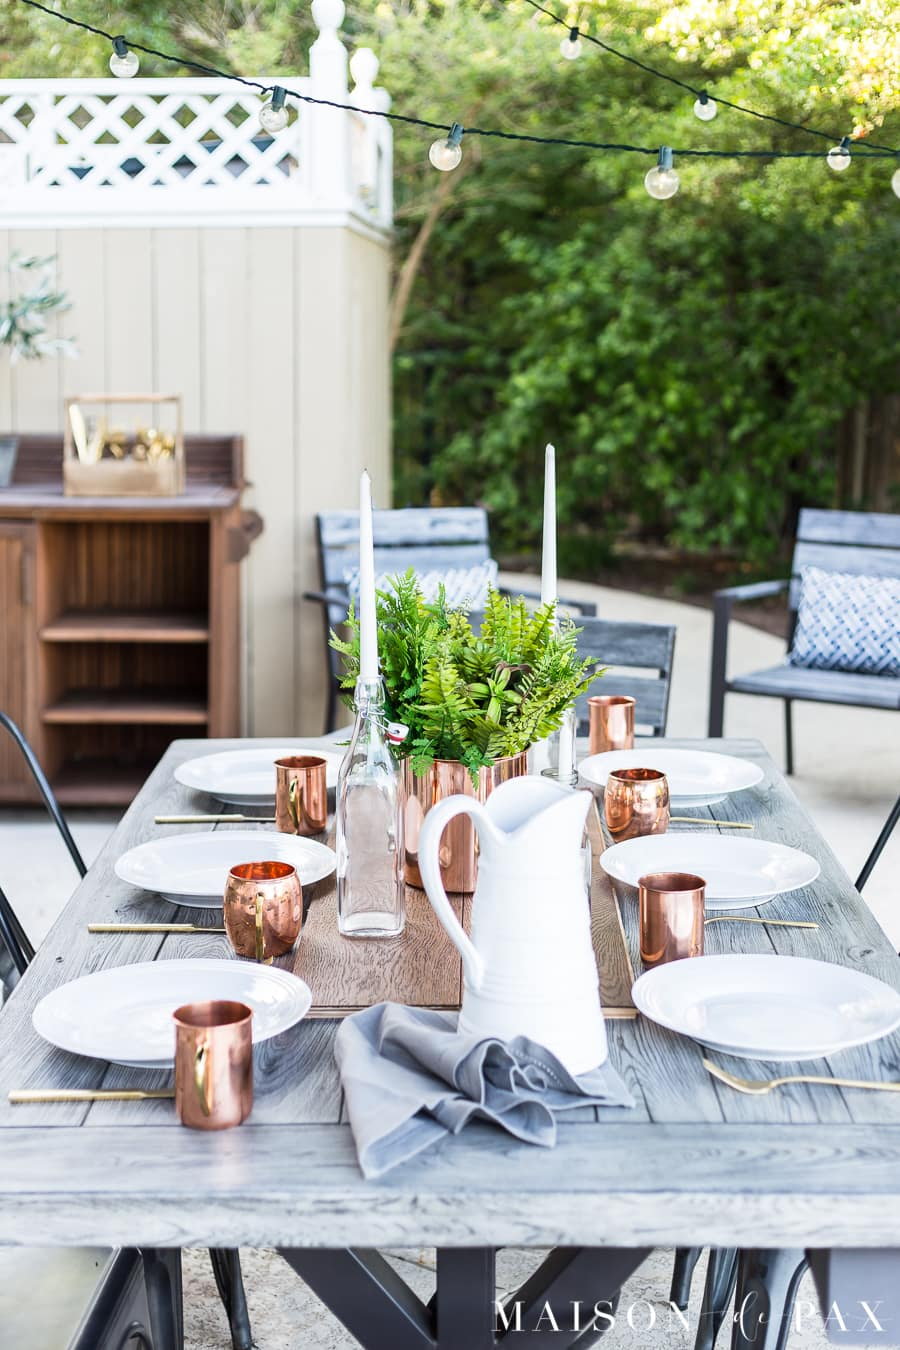 Casually Elegant Outdoor Dining: Get Tips For Beautiful, Simple Outdoor  Summer Dining. #